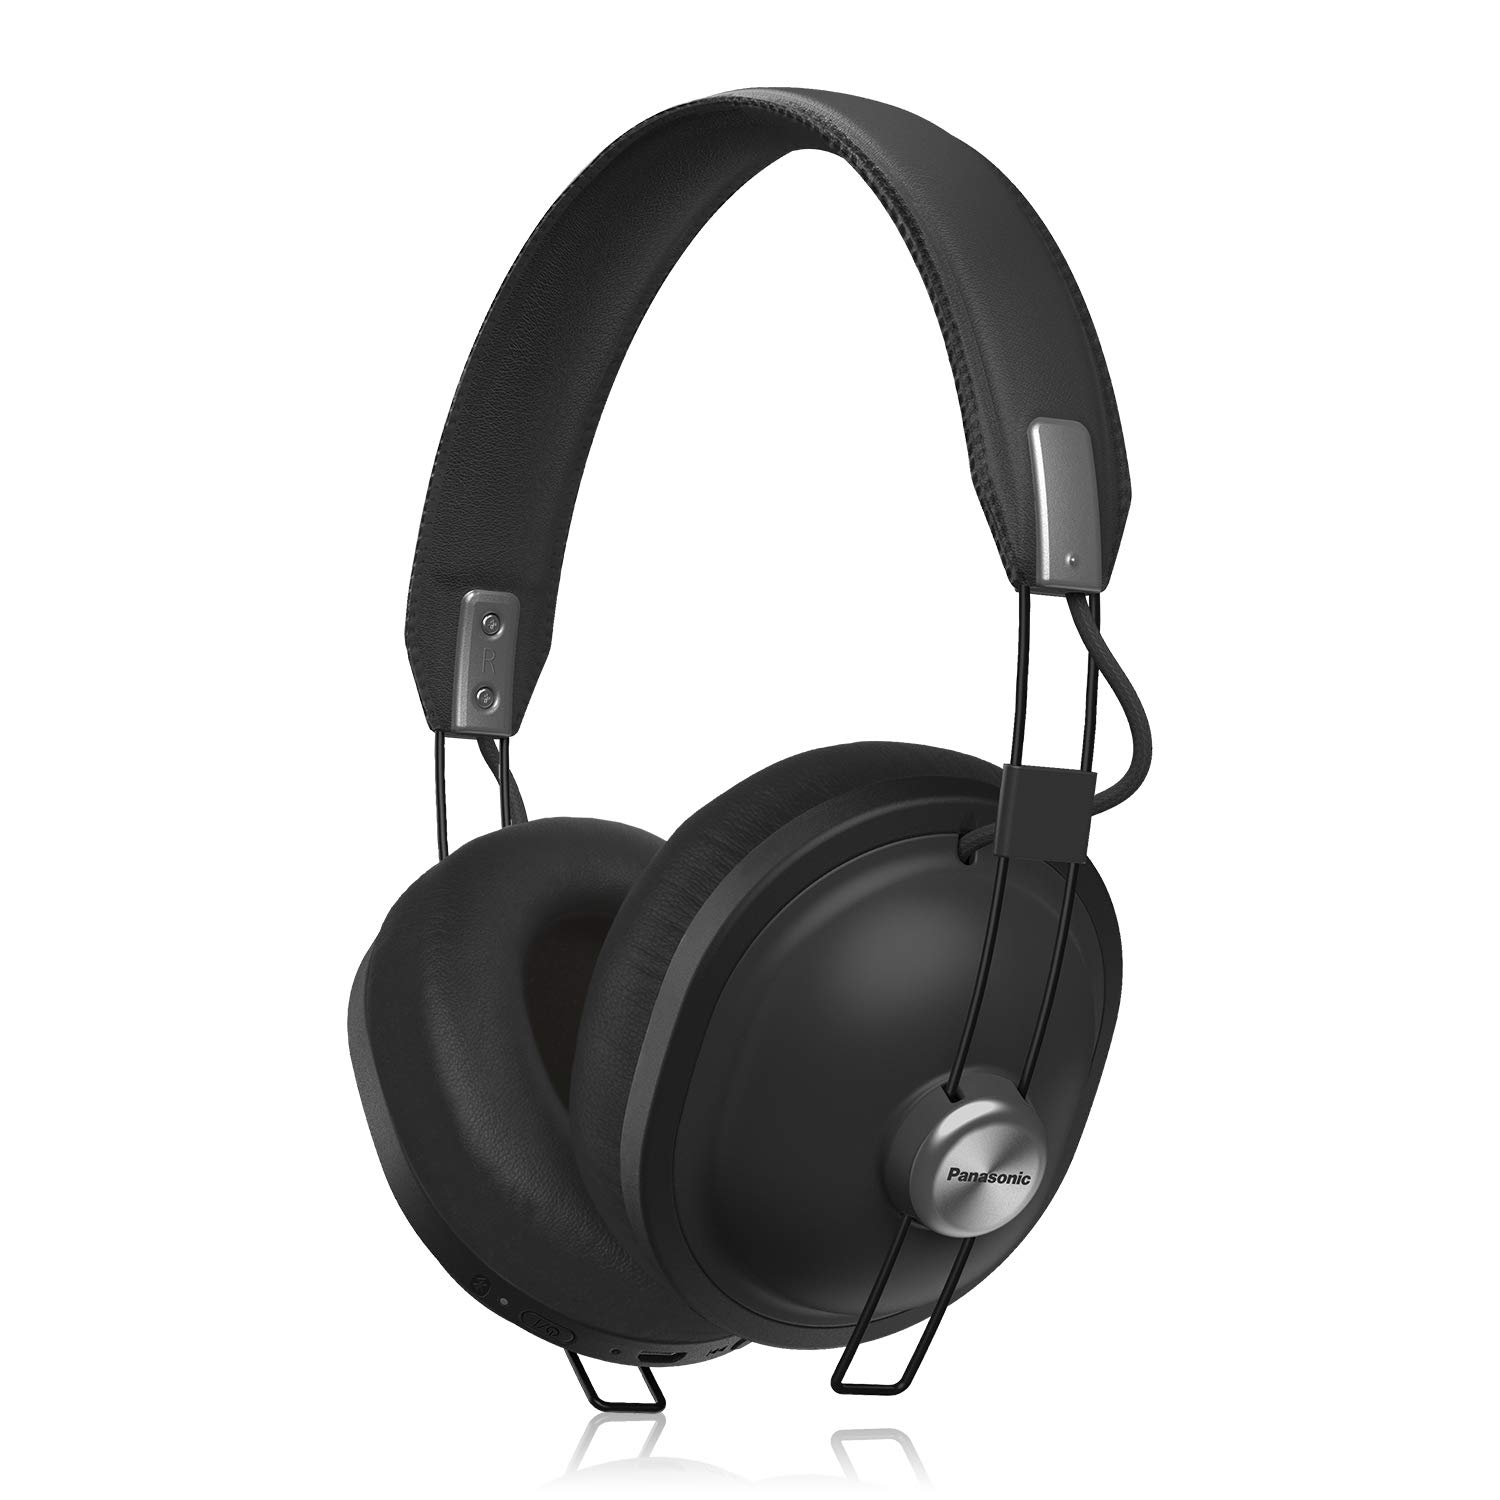 91642333f63b6c Amazon.com: PANASONIC Retro Wireless Headphones with Bluetooth connectivity  and up to 24-Hour Playback - RP-HTX80B-K - Over the Ear Headphones (Matte  ...